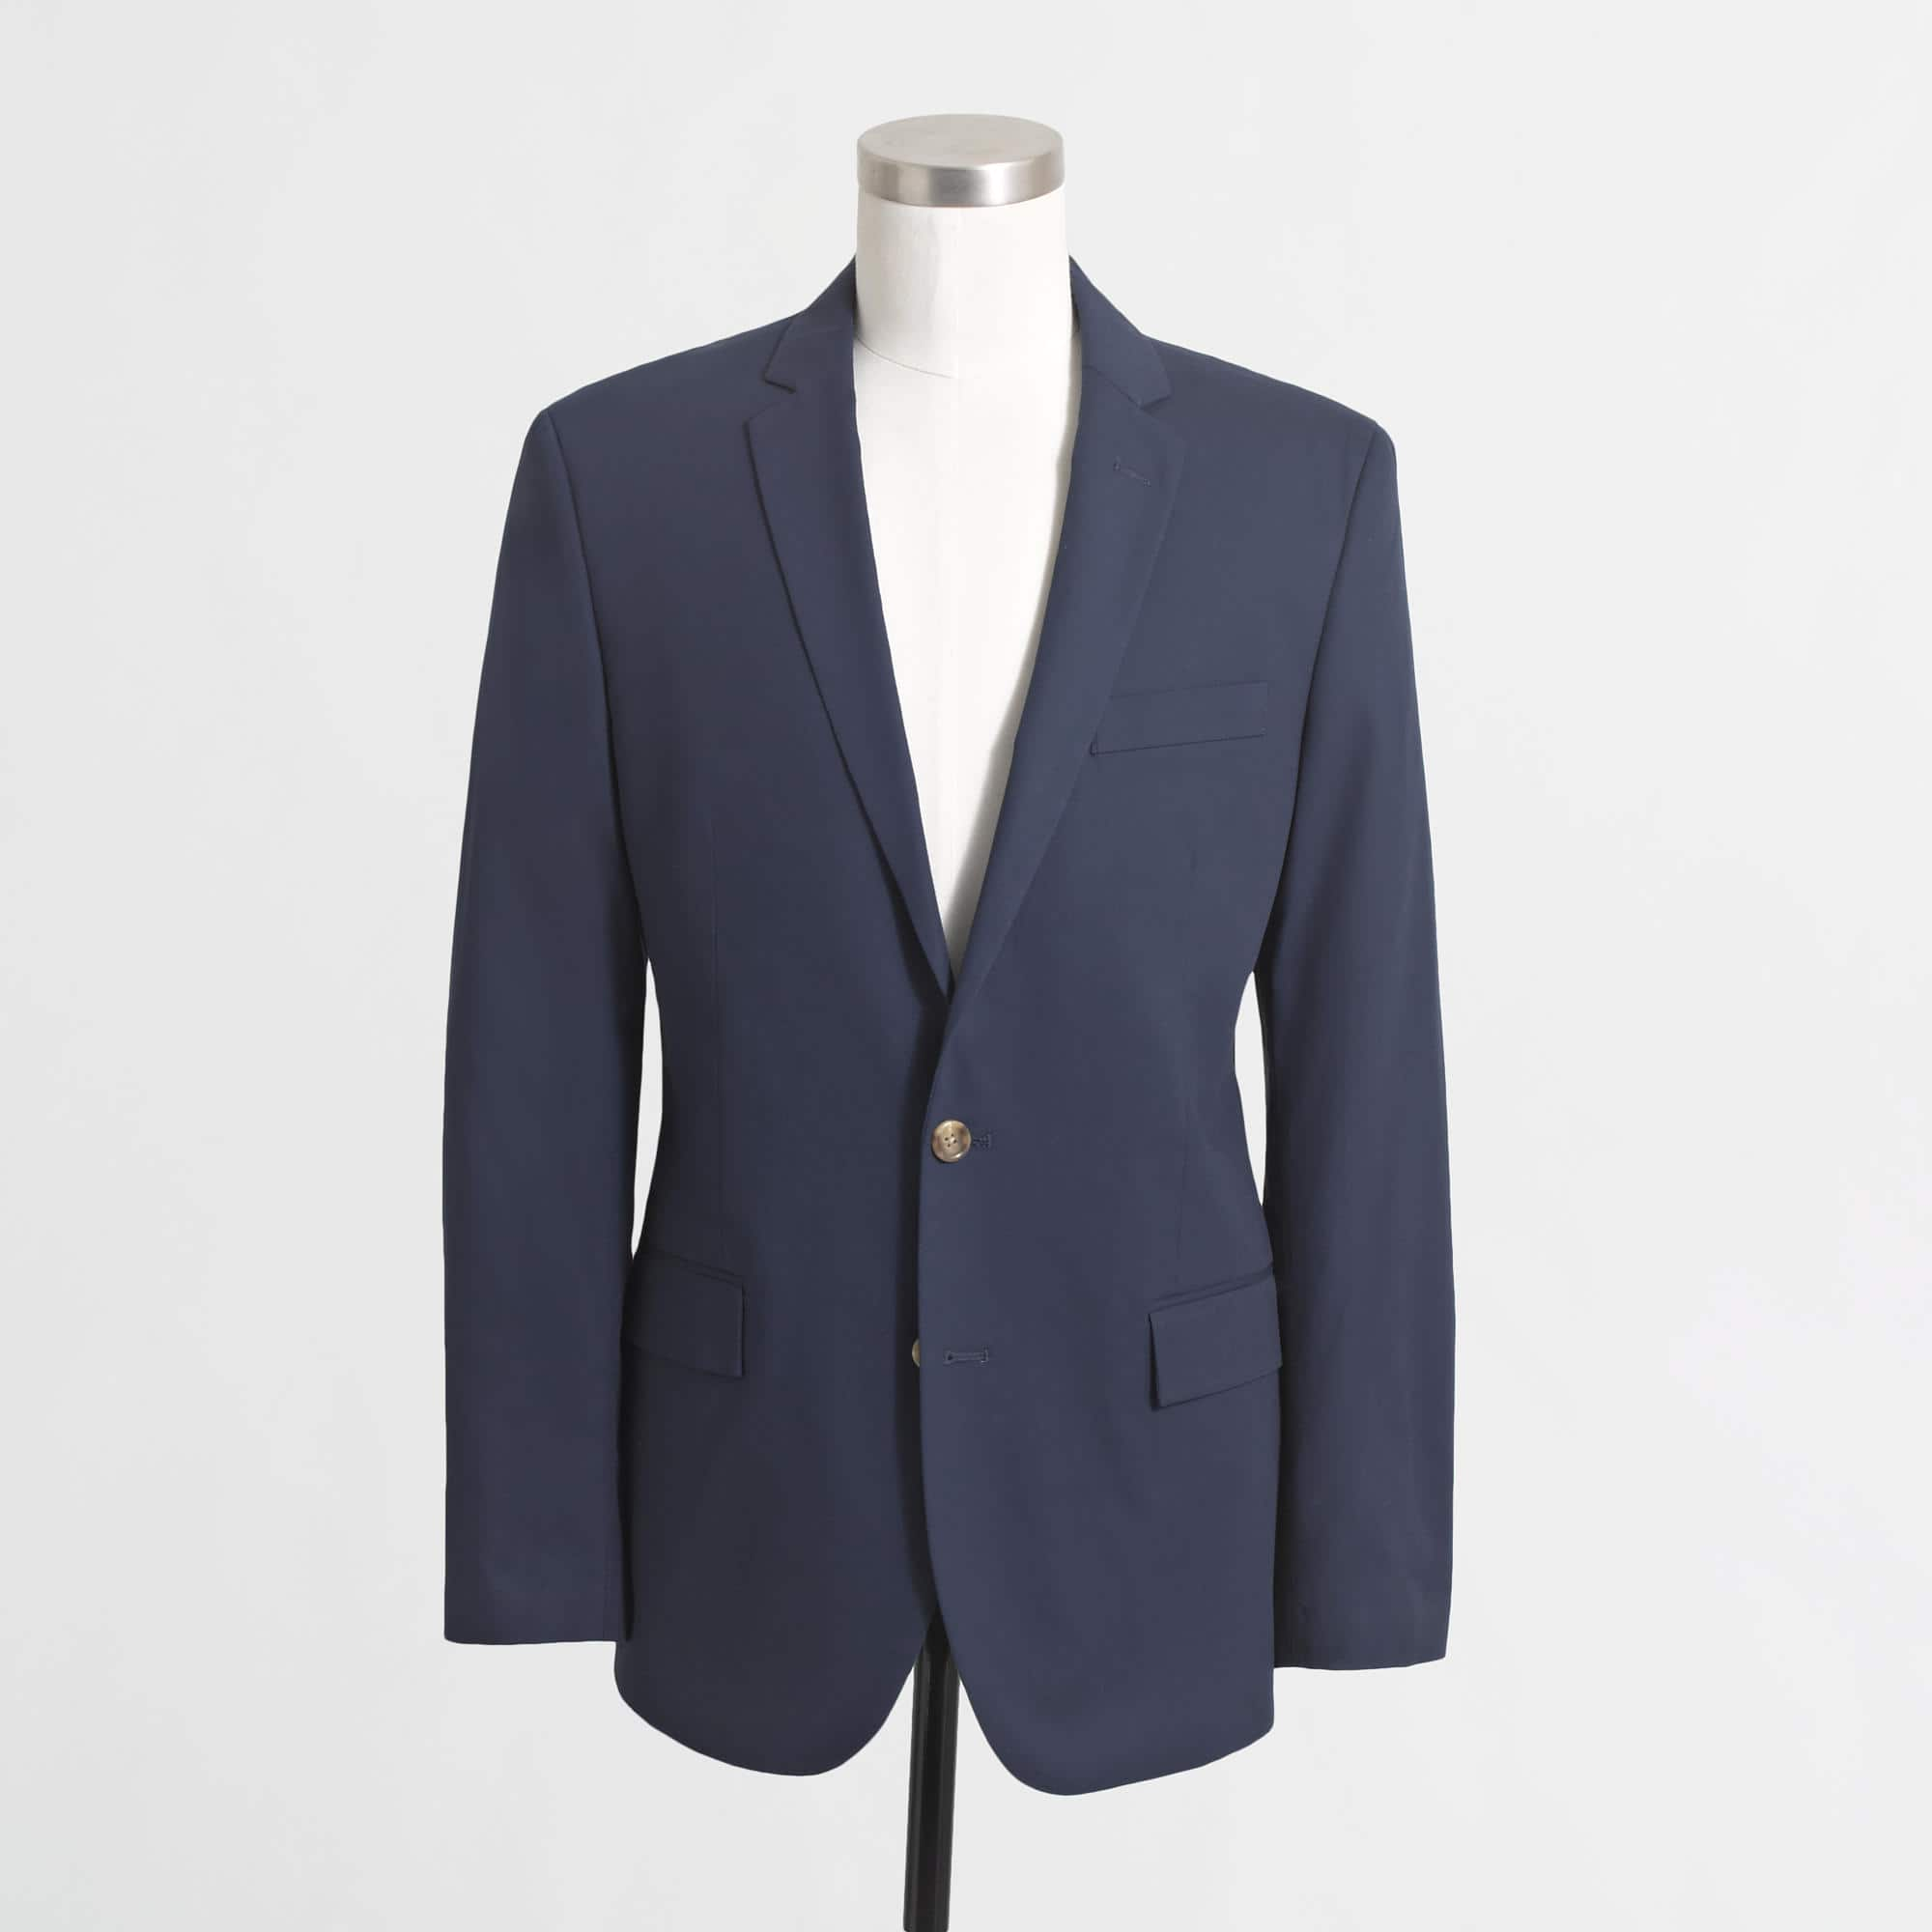 J. Crew Factory Suits - 40% plus additional 44% off with Gilt City & coupons.com + Free Shipping